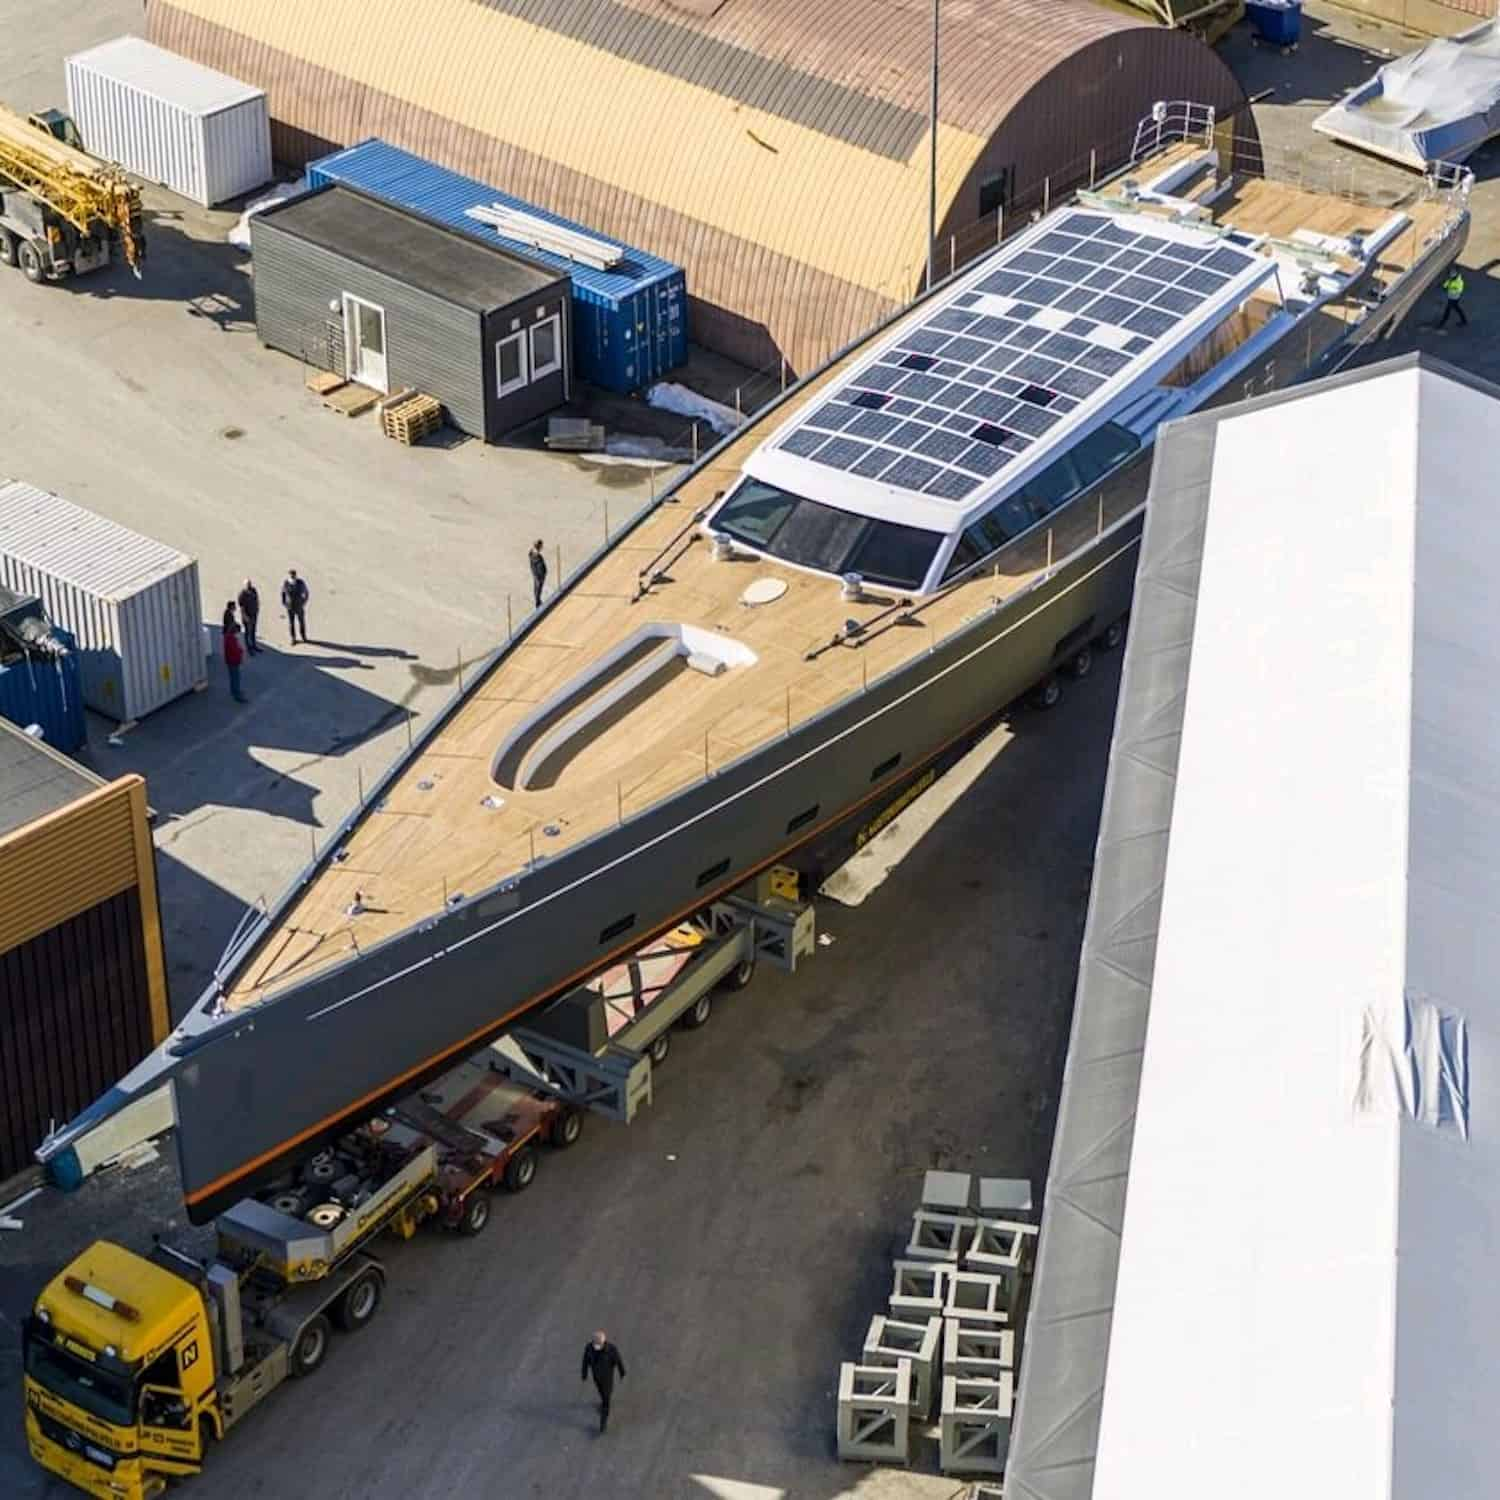 Baltic 146 PATH superyacht Solbian solar photovoltaik largest in the world walkable custom-made bespoke yacht sailing transport